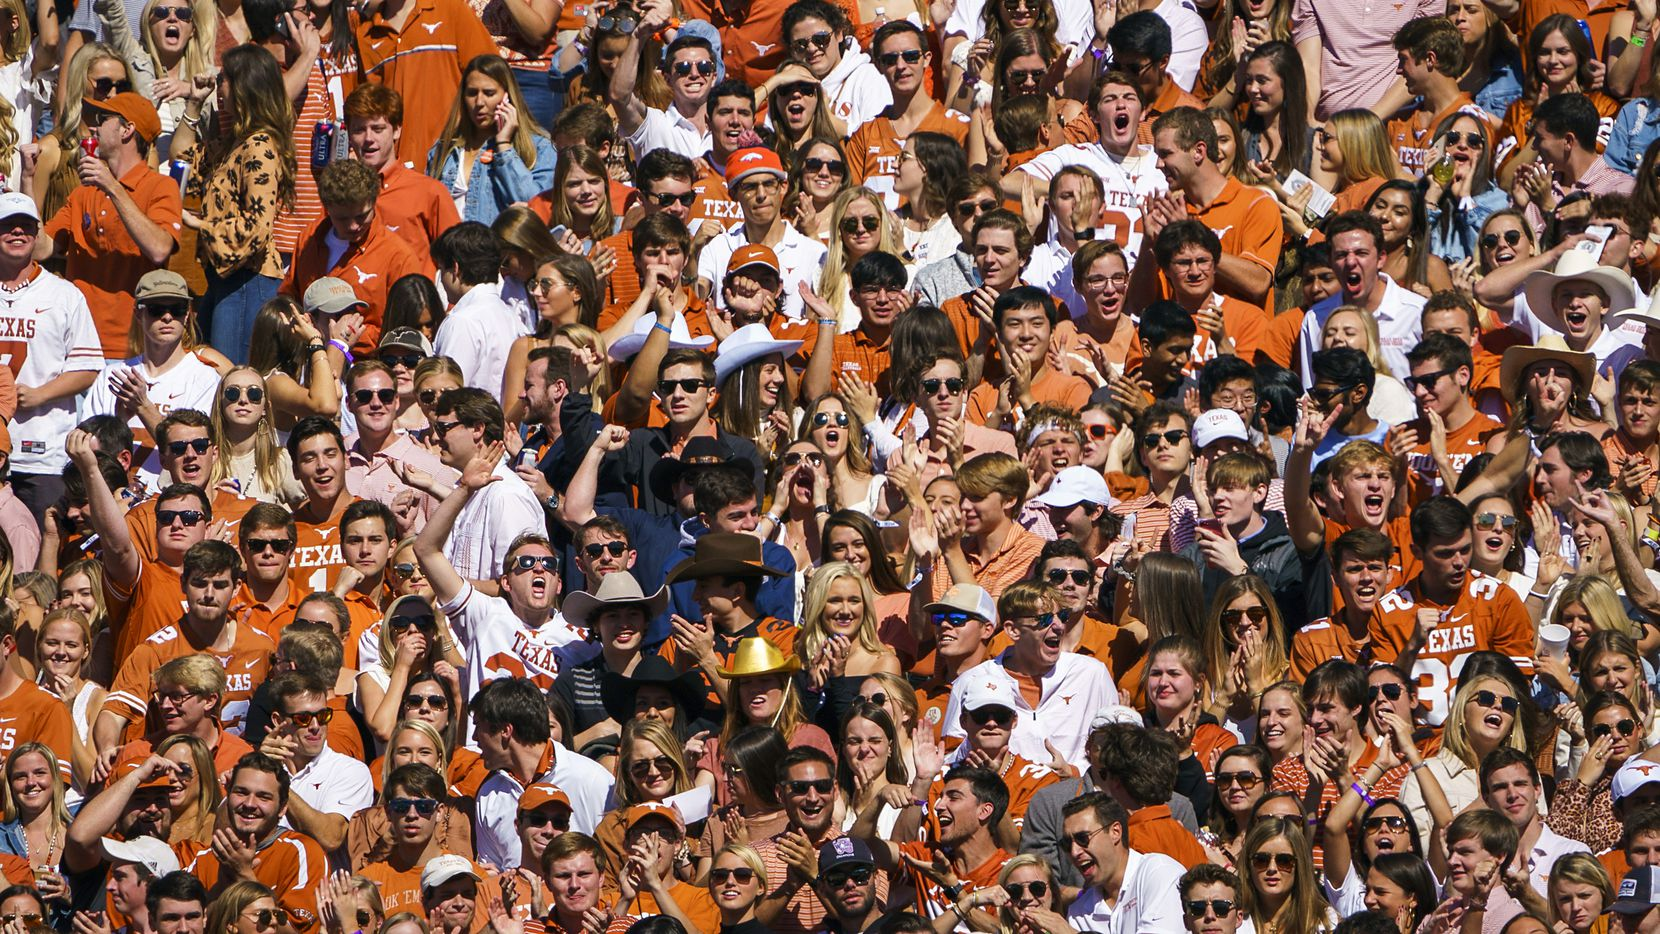 Texas fans cheer during the first half of an NCAA football game against Oklahoma at the Cotton Bowl on Saturday, Oct. 12, 2019, in Dallas.